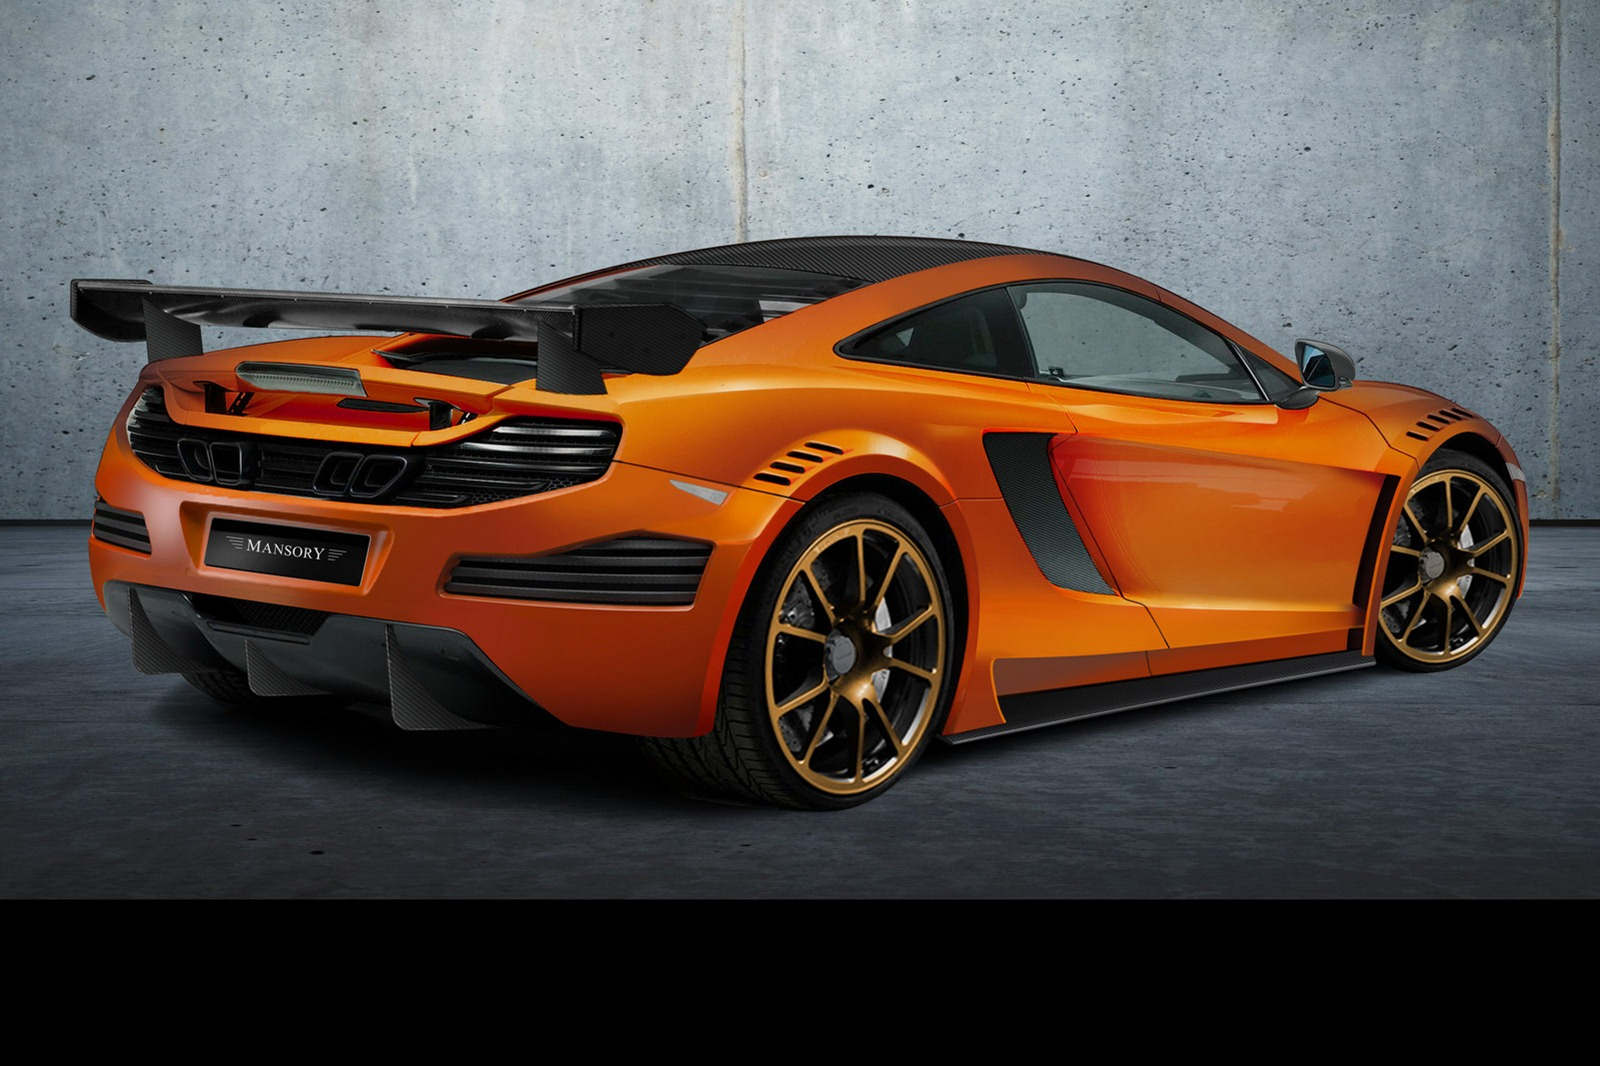 mansory mclaren mp4 12c is burning carbon in geneva autoevolution. Black Bedroom Furniture Sets. Home Design Ideas